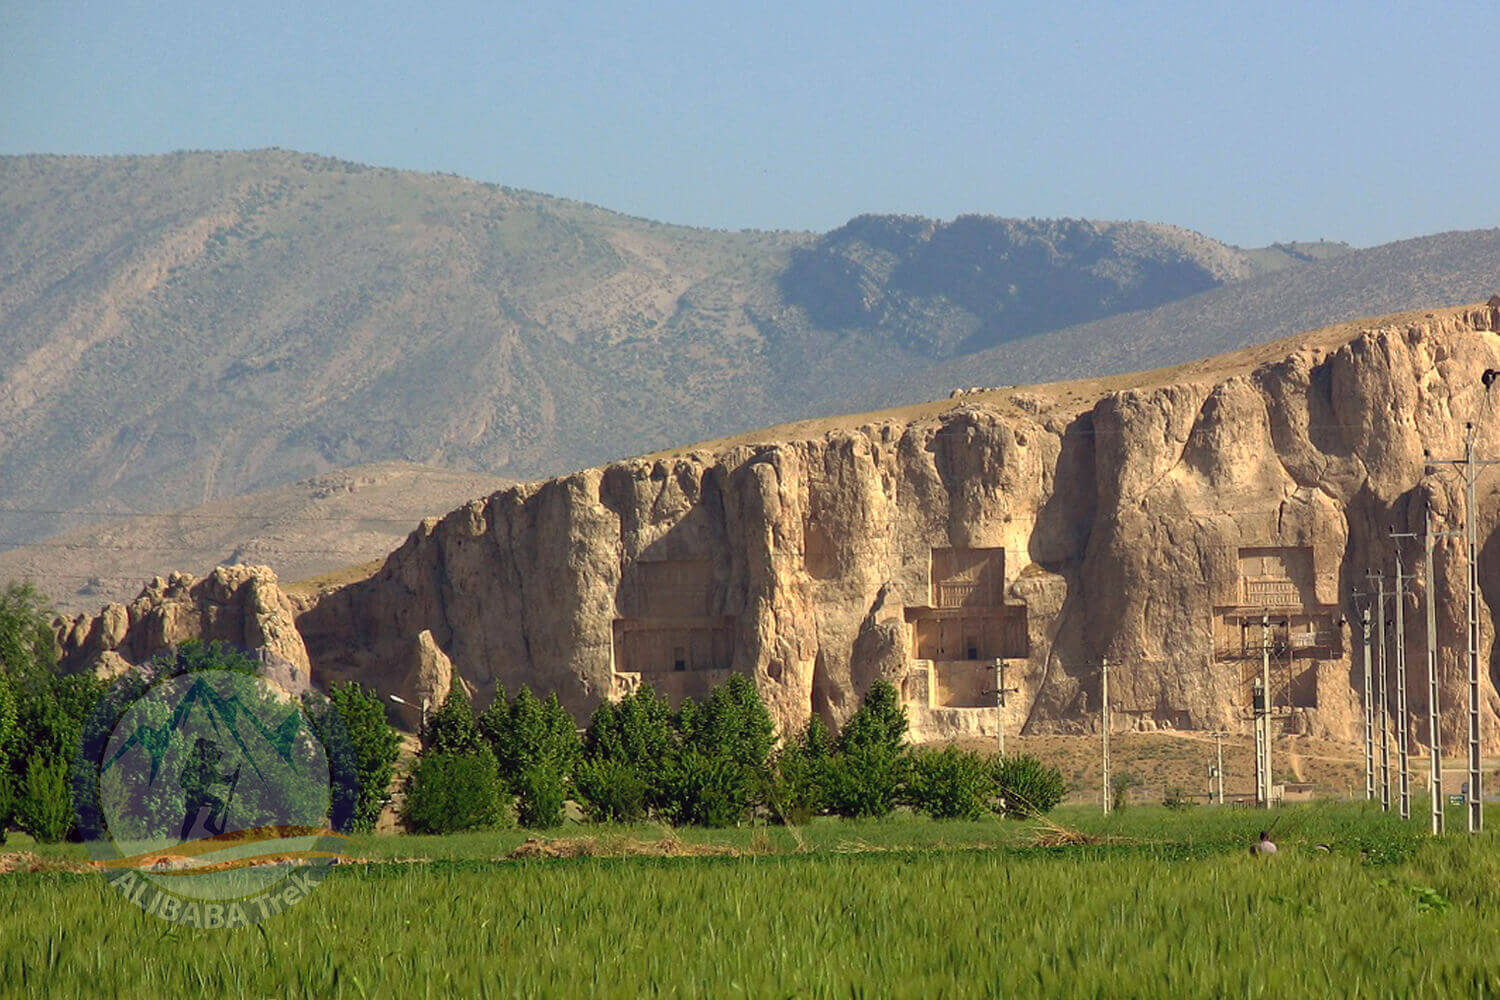 Alibabatrek iran deserts and culture tour Naqsh-e Rostam